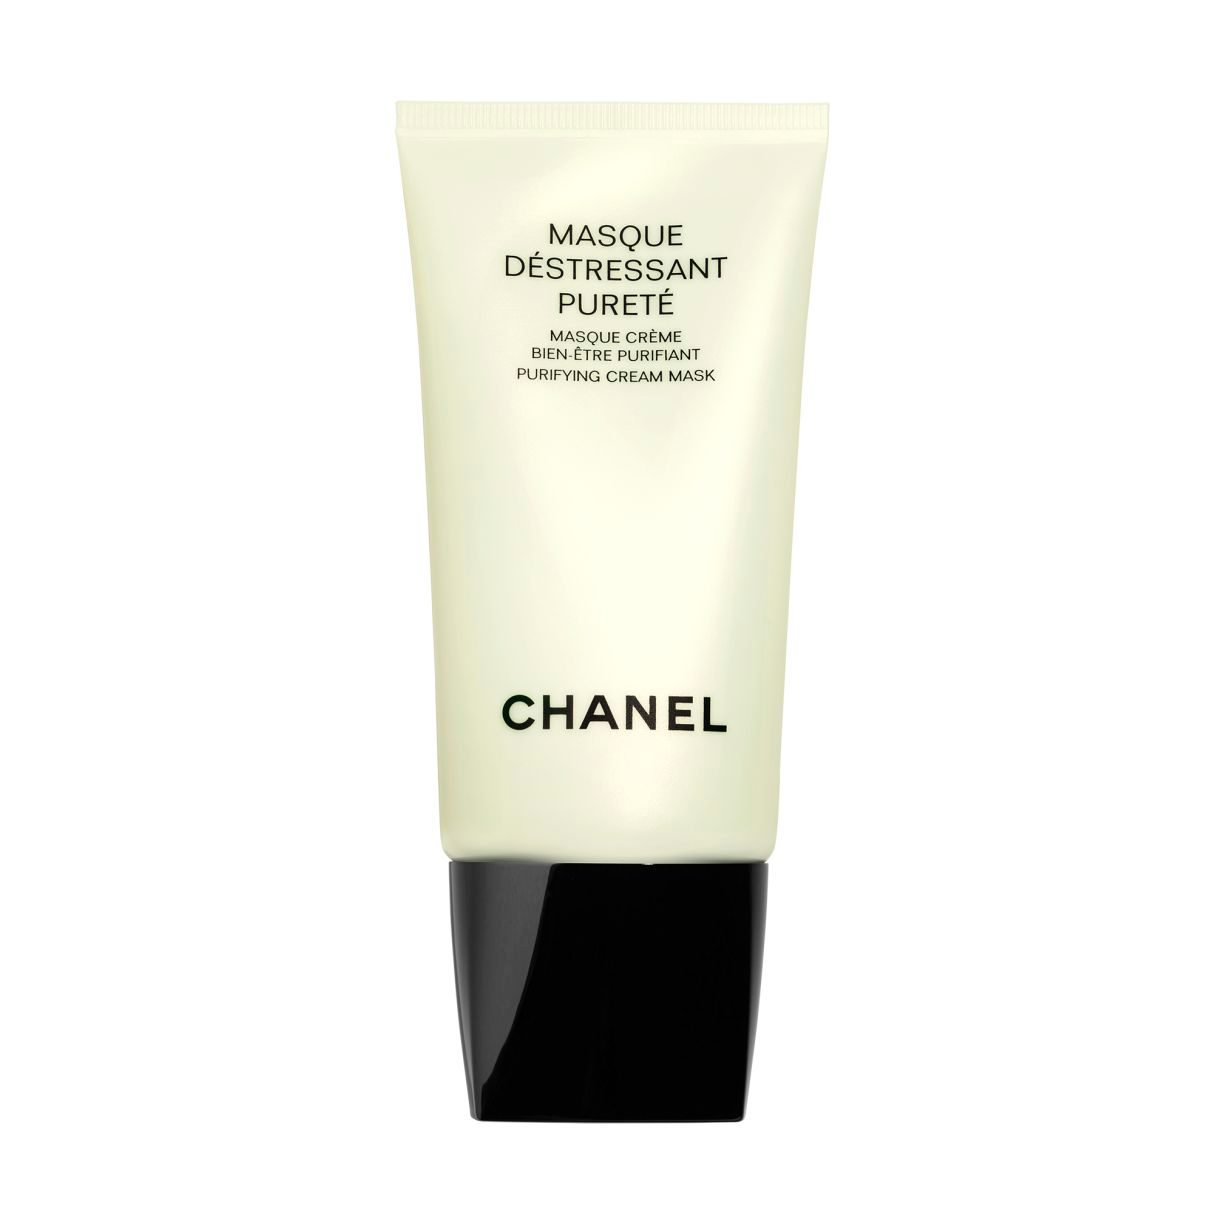 MASQUE DÉSTRESSANT PURETÉ PURIFYING CREAM MASK TUBE 75ML